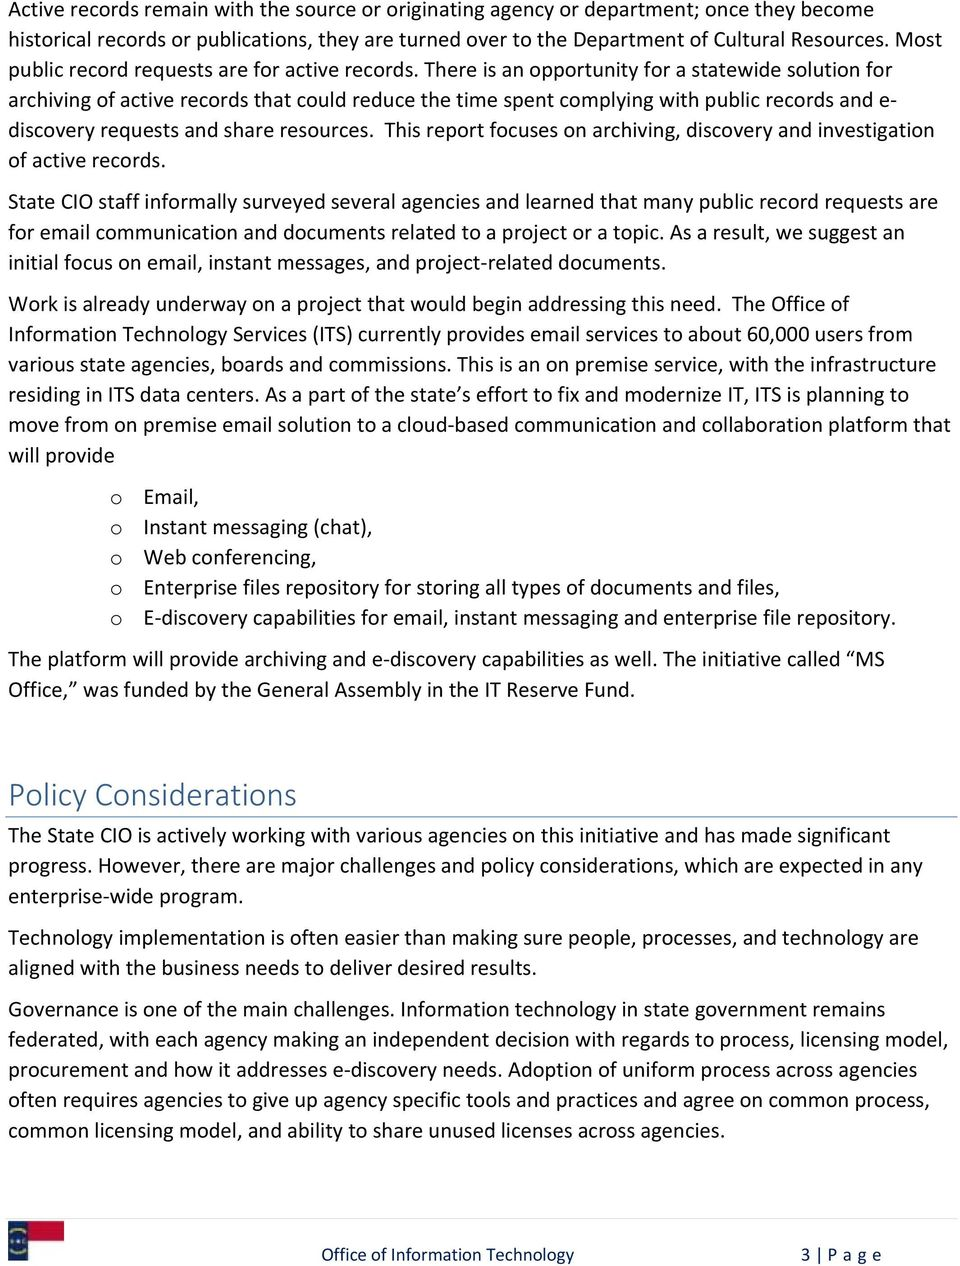 There is an opportunity for a statewide solution for archiving of active records that could reduce the time spent complying with public records and e discovery requests and share resources.